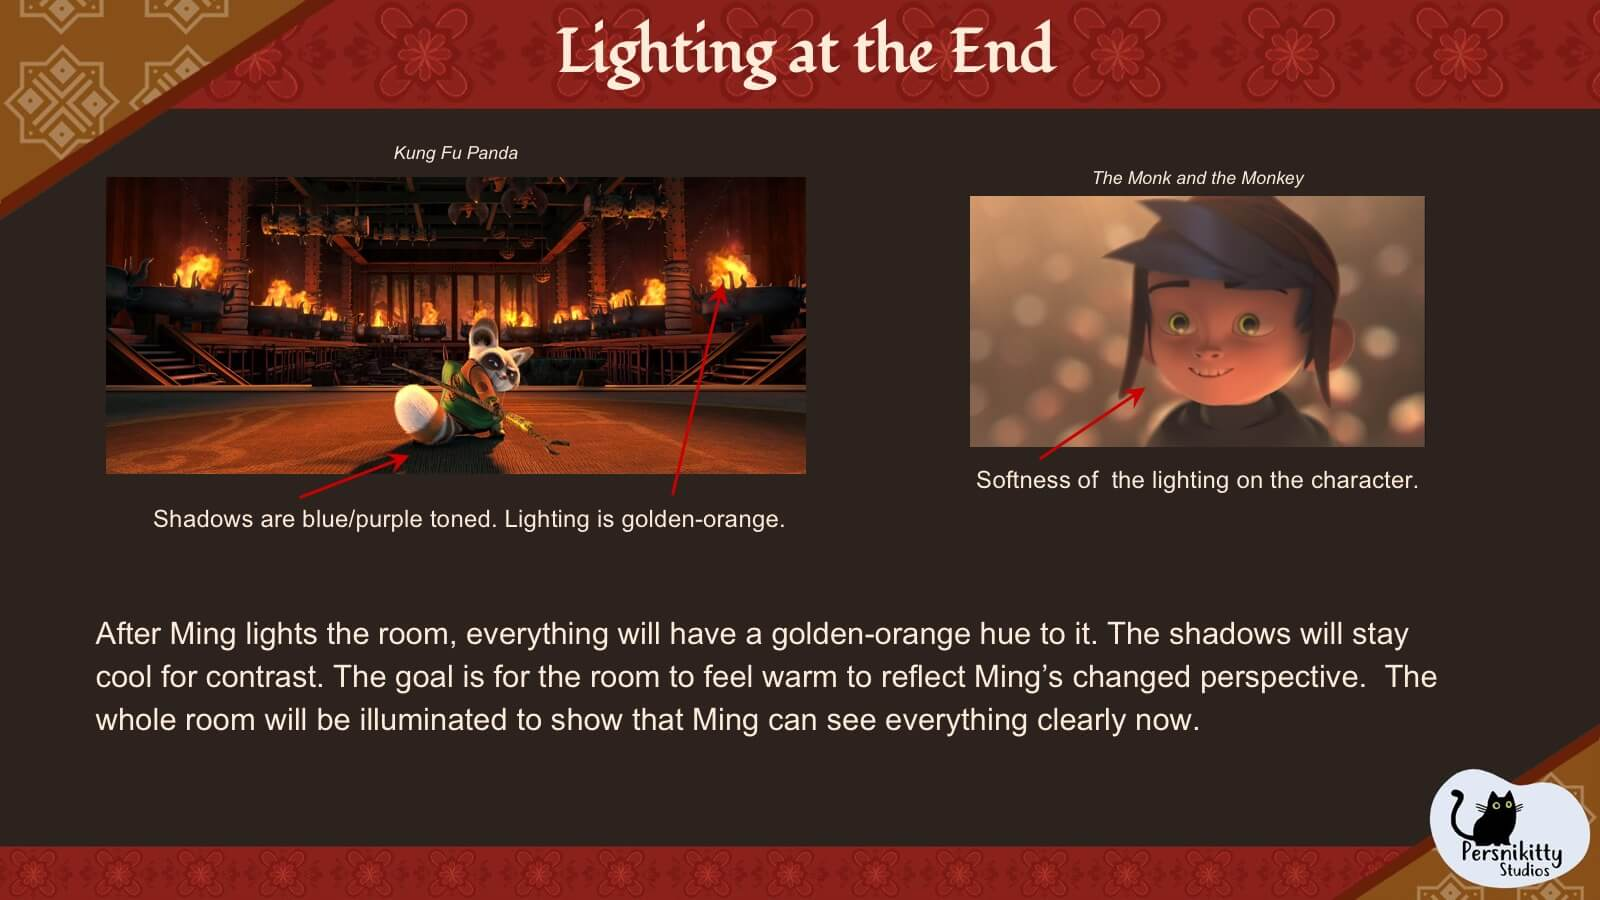 A slide displaying the visual references for lighting in the temple at the end of the film.